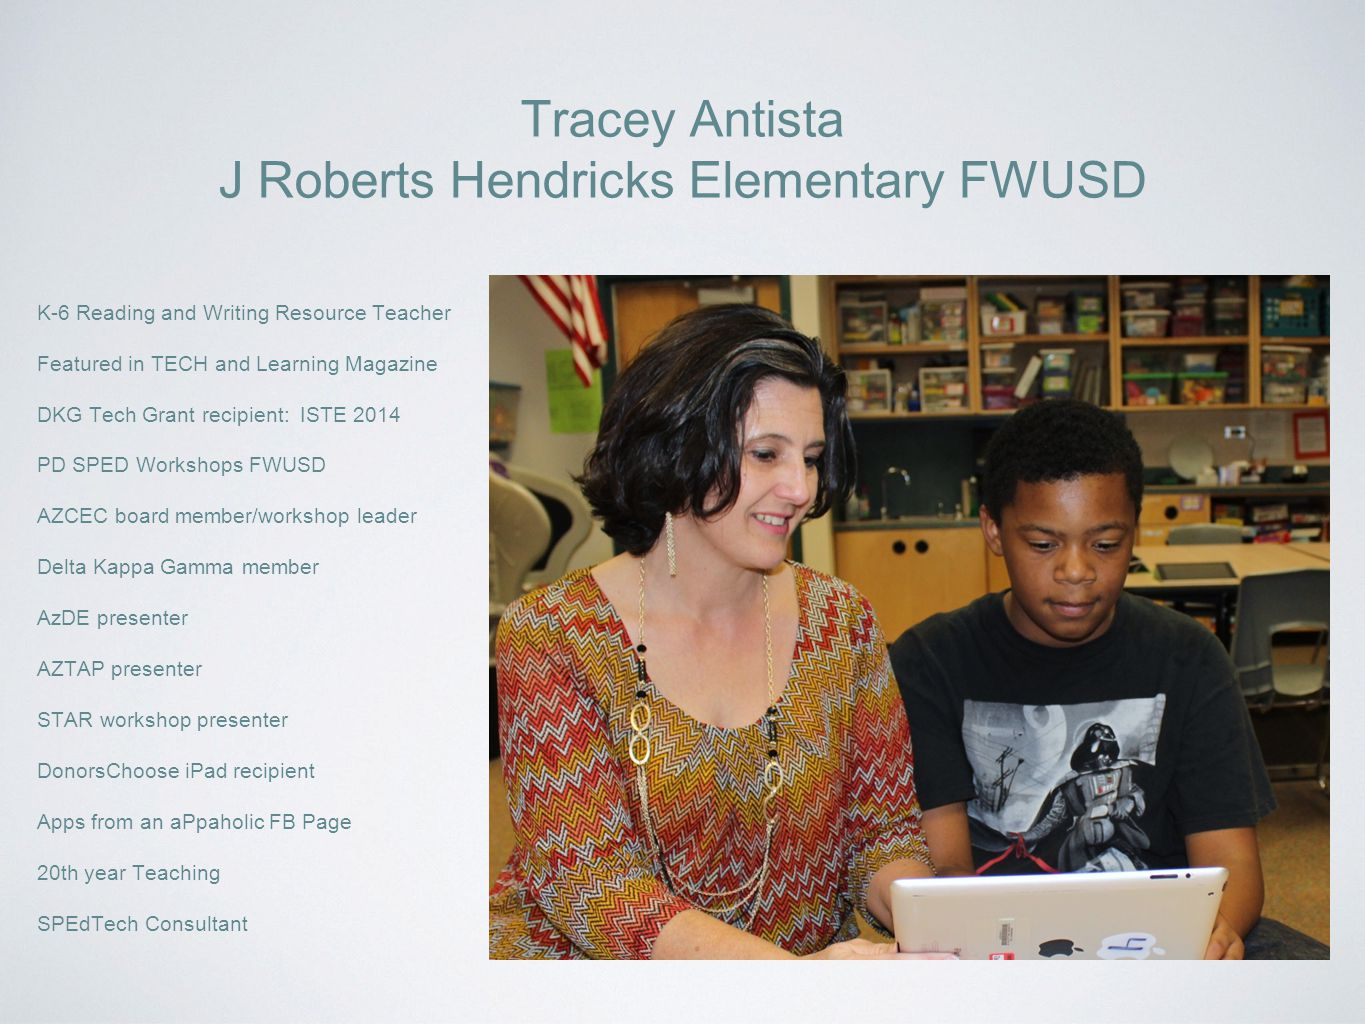 J Roberts Hendricks Elementary FWUSD K-6 Reading and Writing Resource Teacher Featured in TECH and Learning Magazine DKG Tech Grant recipient: ISTE 20